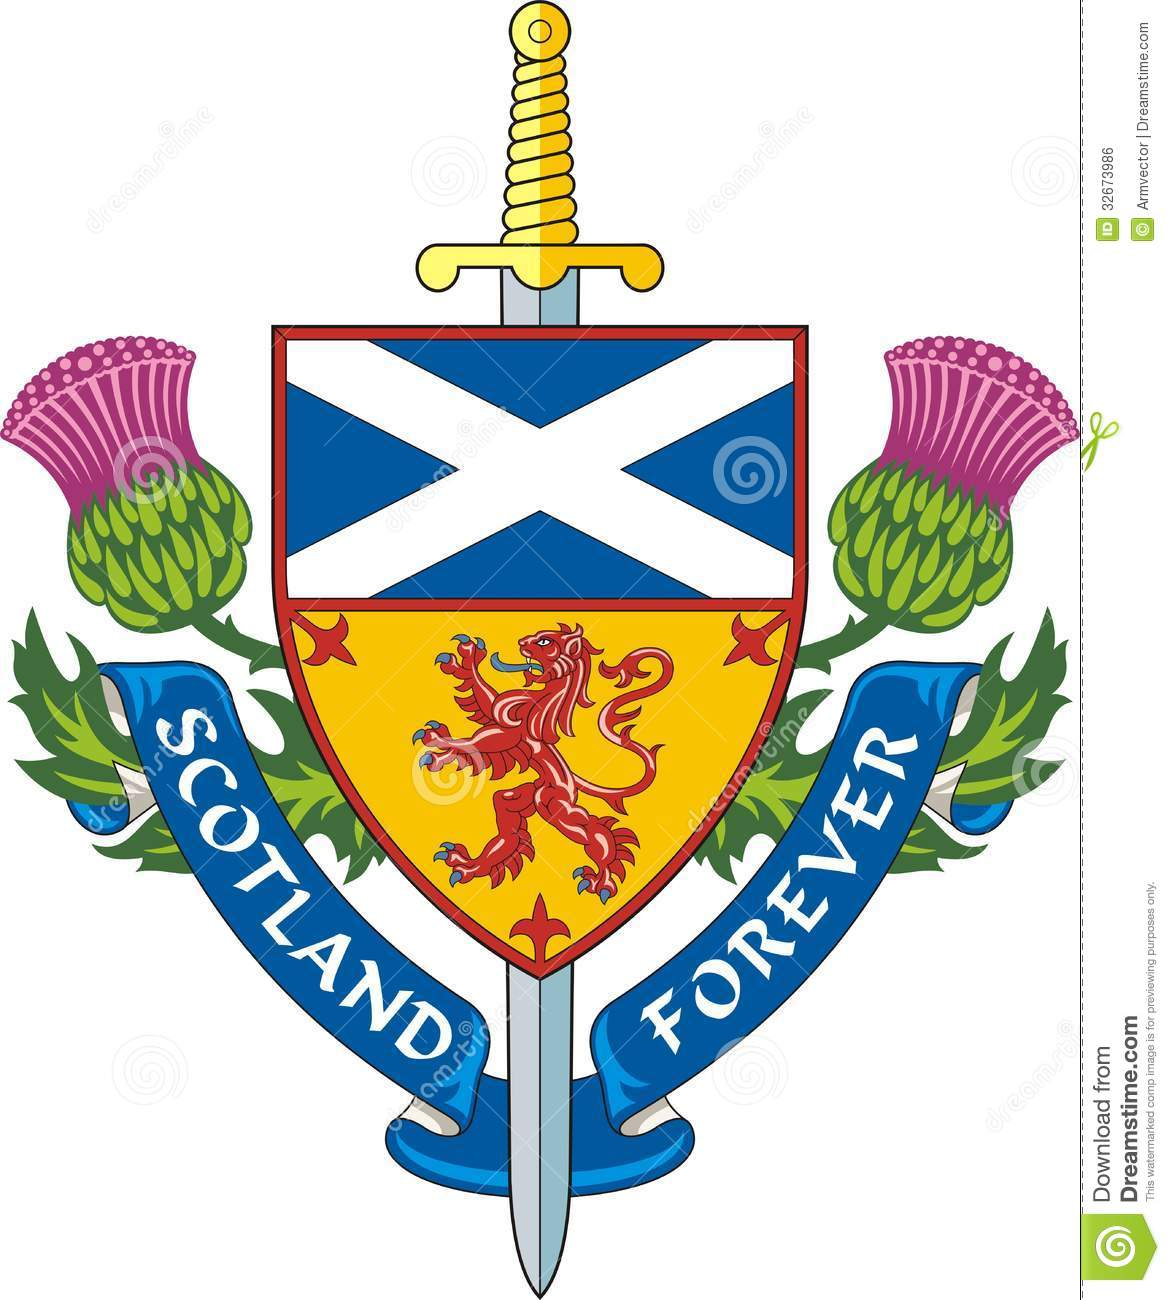 Scotland lessons tes teach scotland forever vector royalty free stock image image 32673986 buycottarizona